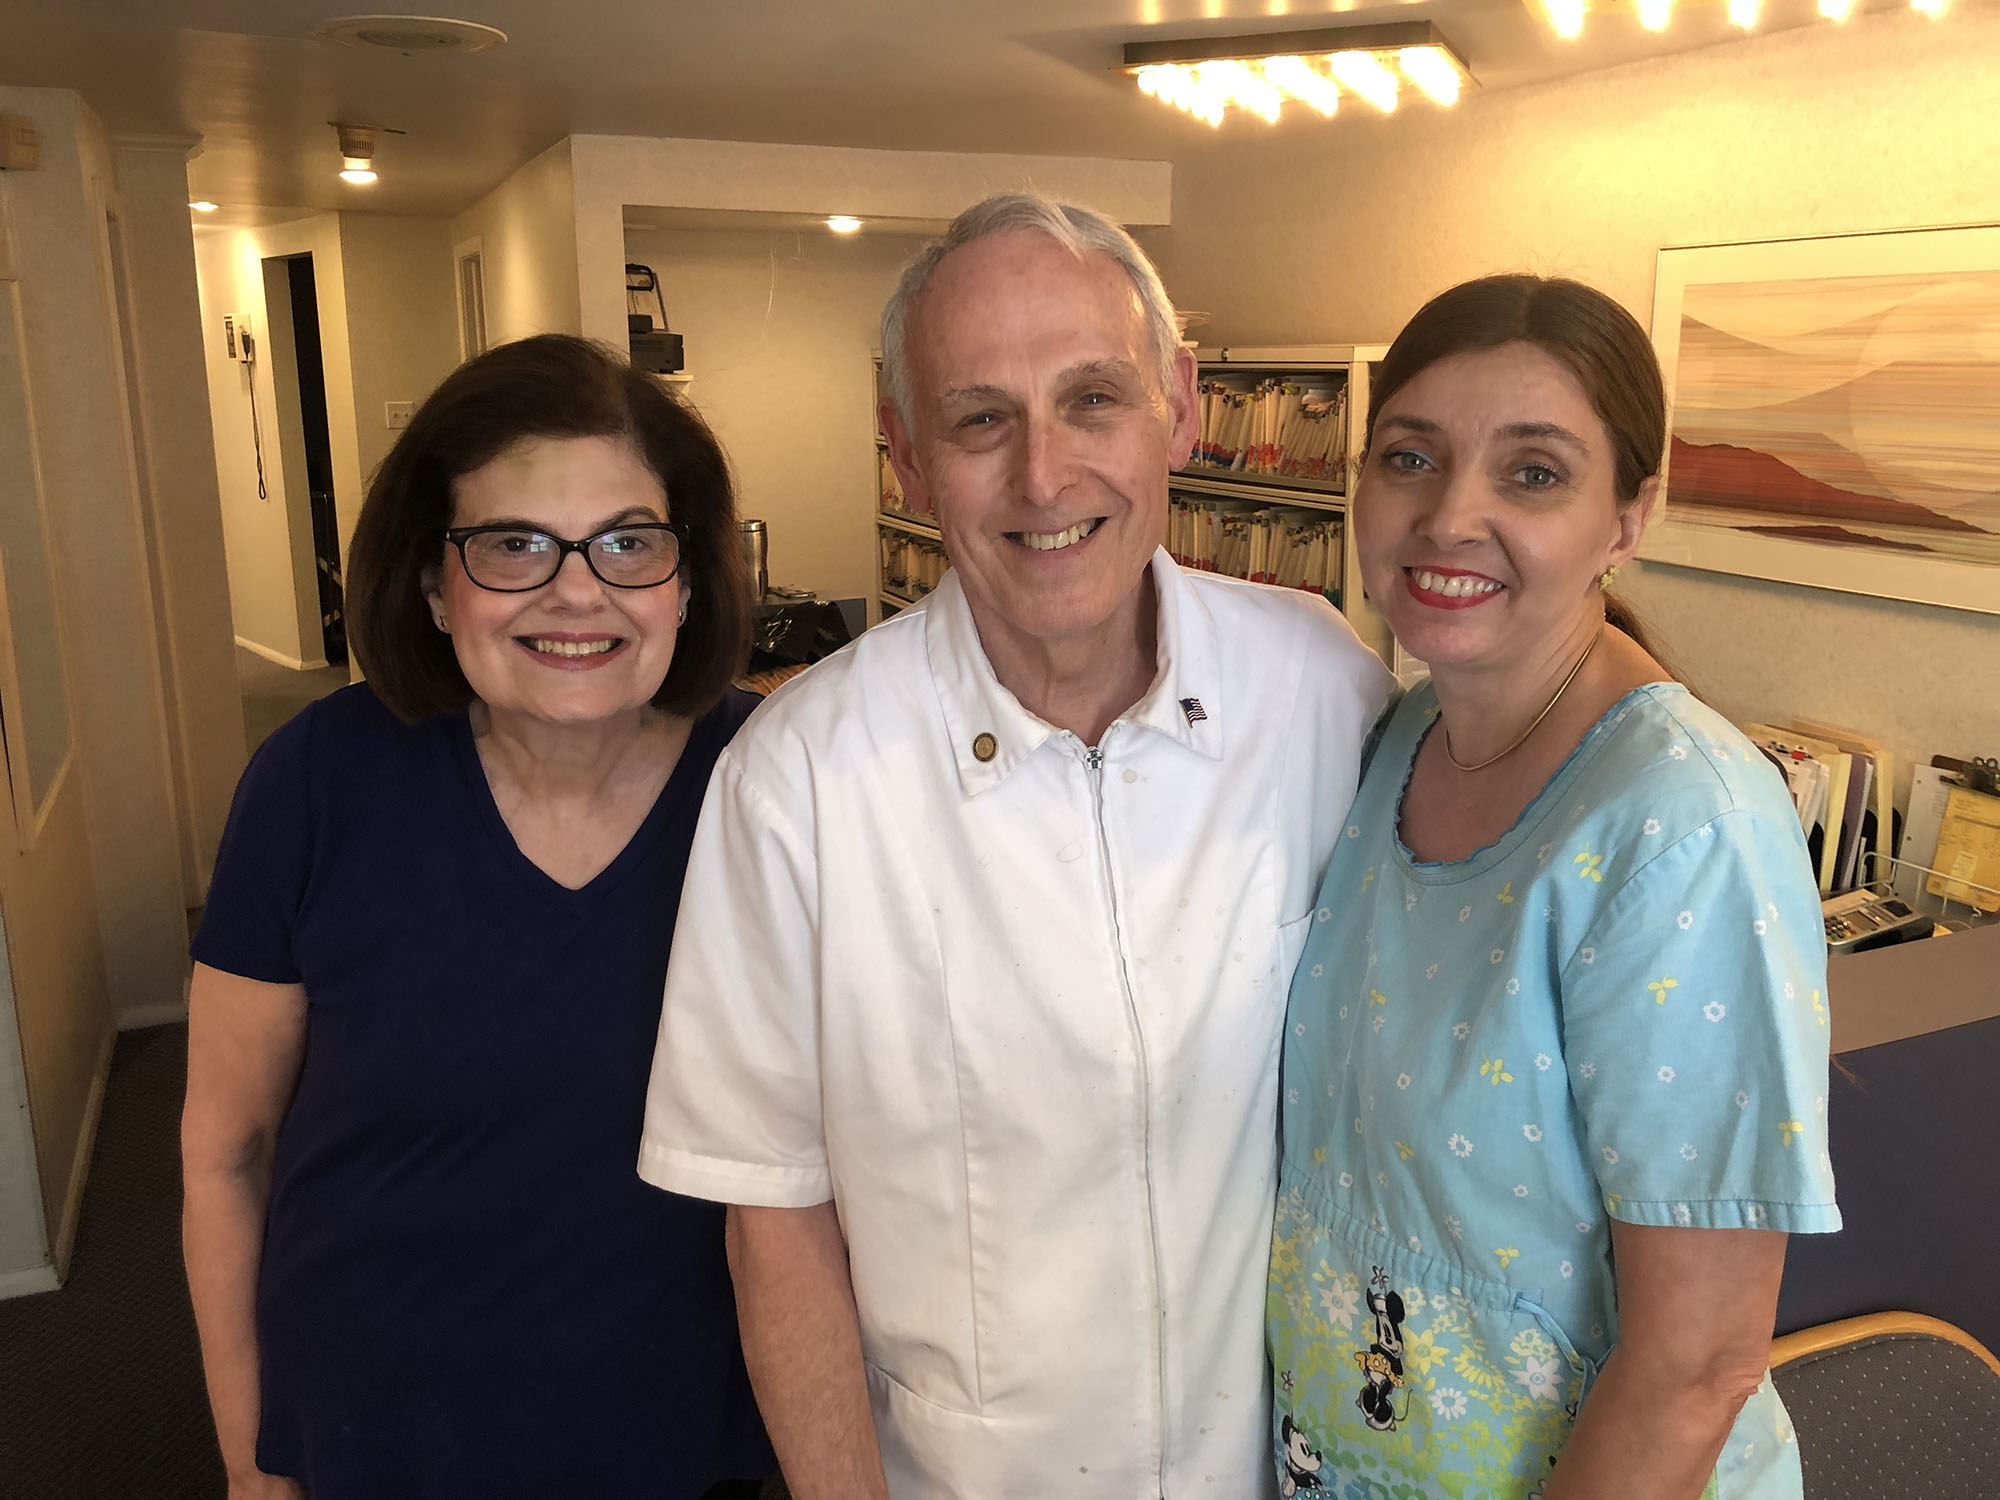 Barbara Hoffman, Dr. Dennis Hoffman, and Kathleen Kelly earlier this week at the 107 Rutgers Avenue dental practice, where Dr. Mark Forwood will soon start serving patients. (Colleague Darlene Tryon was away.)